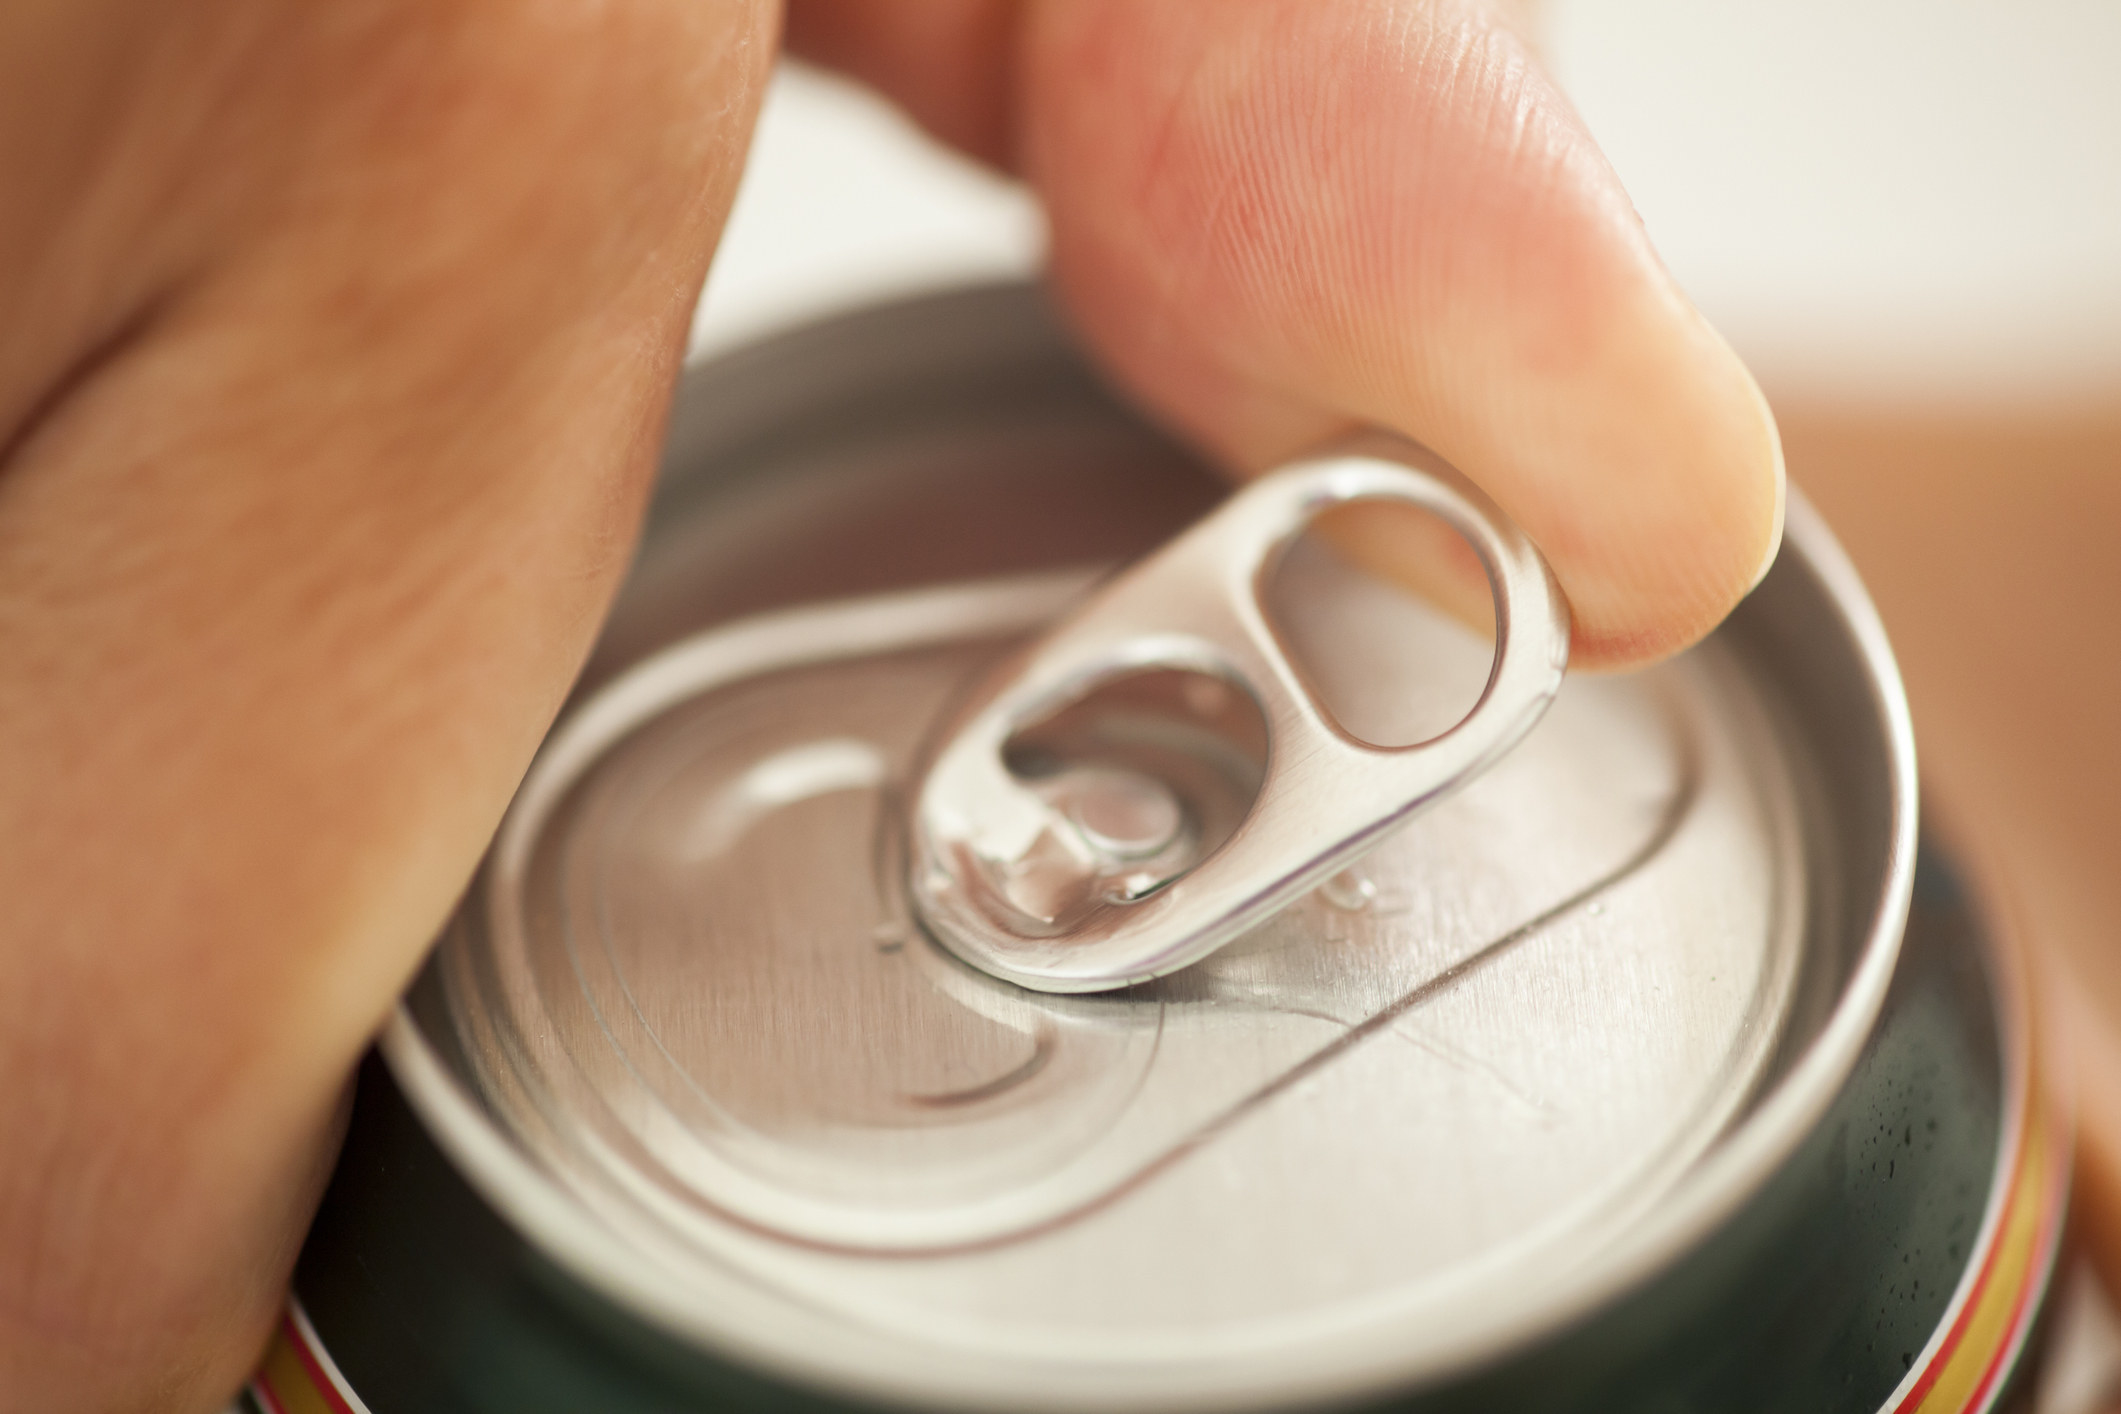 A hand opening a can of soda